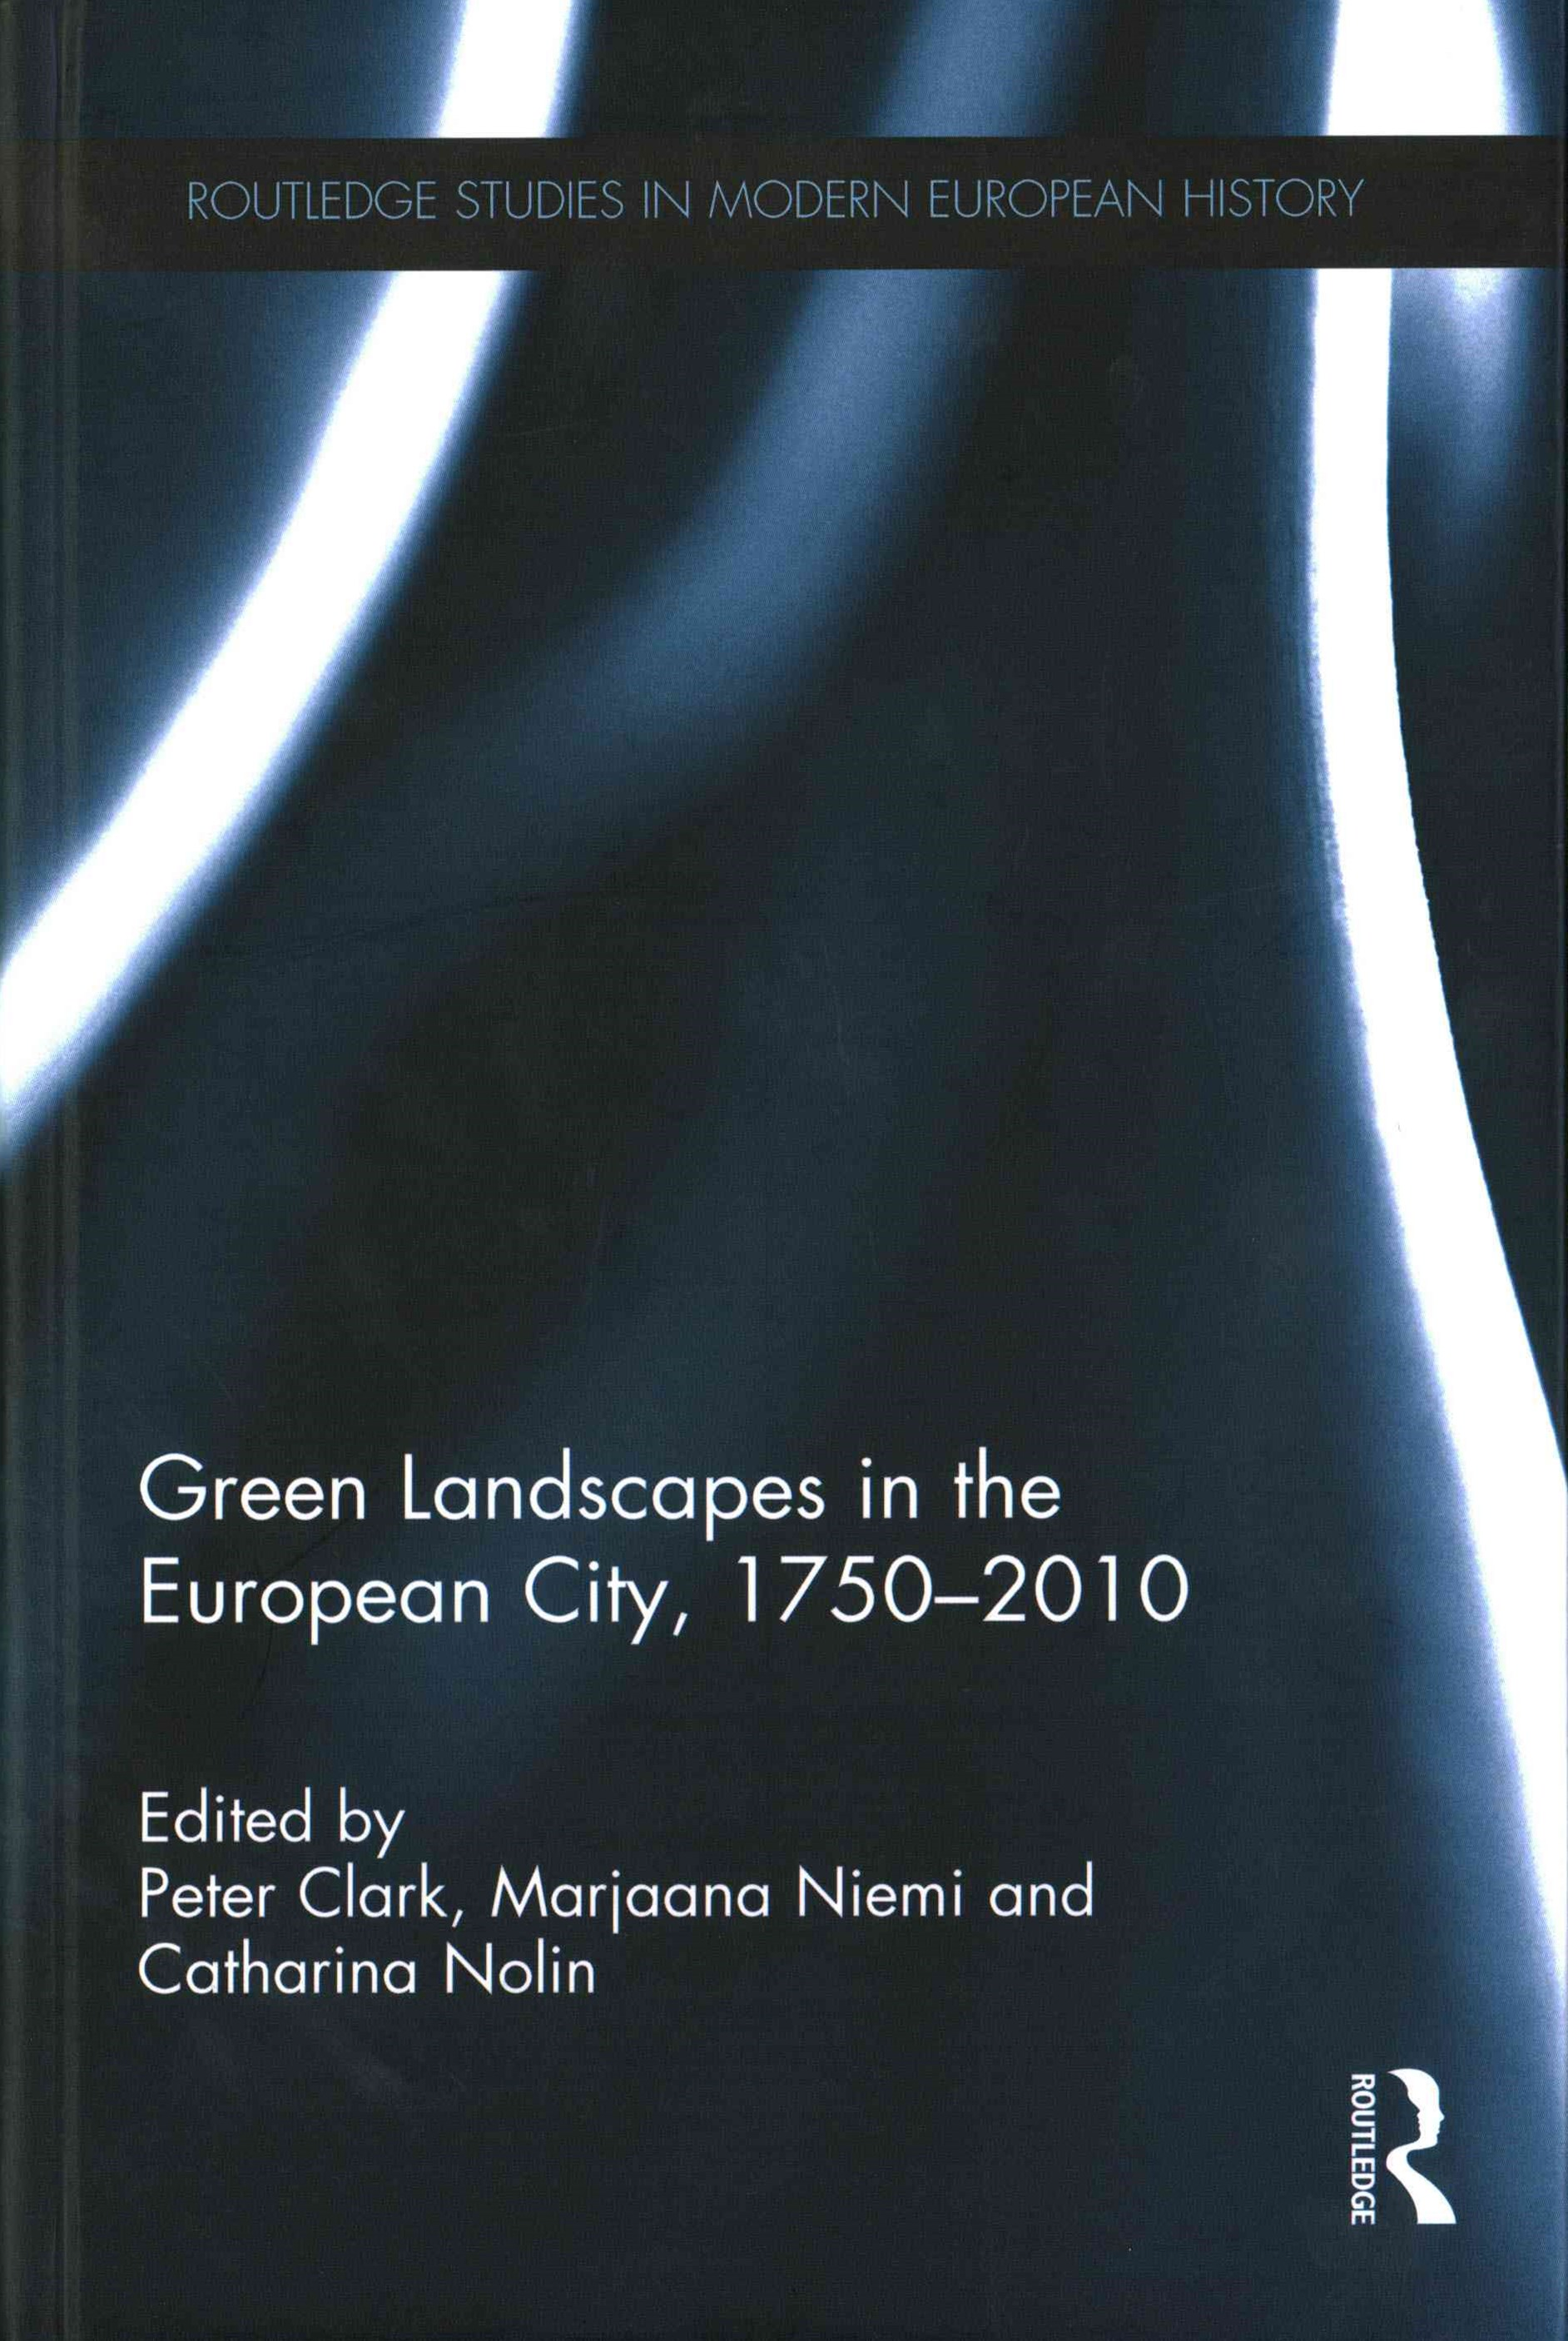 Green Landscapes in the European City